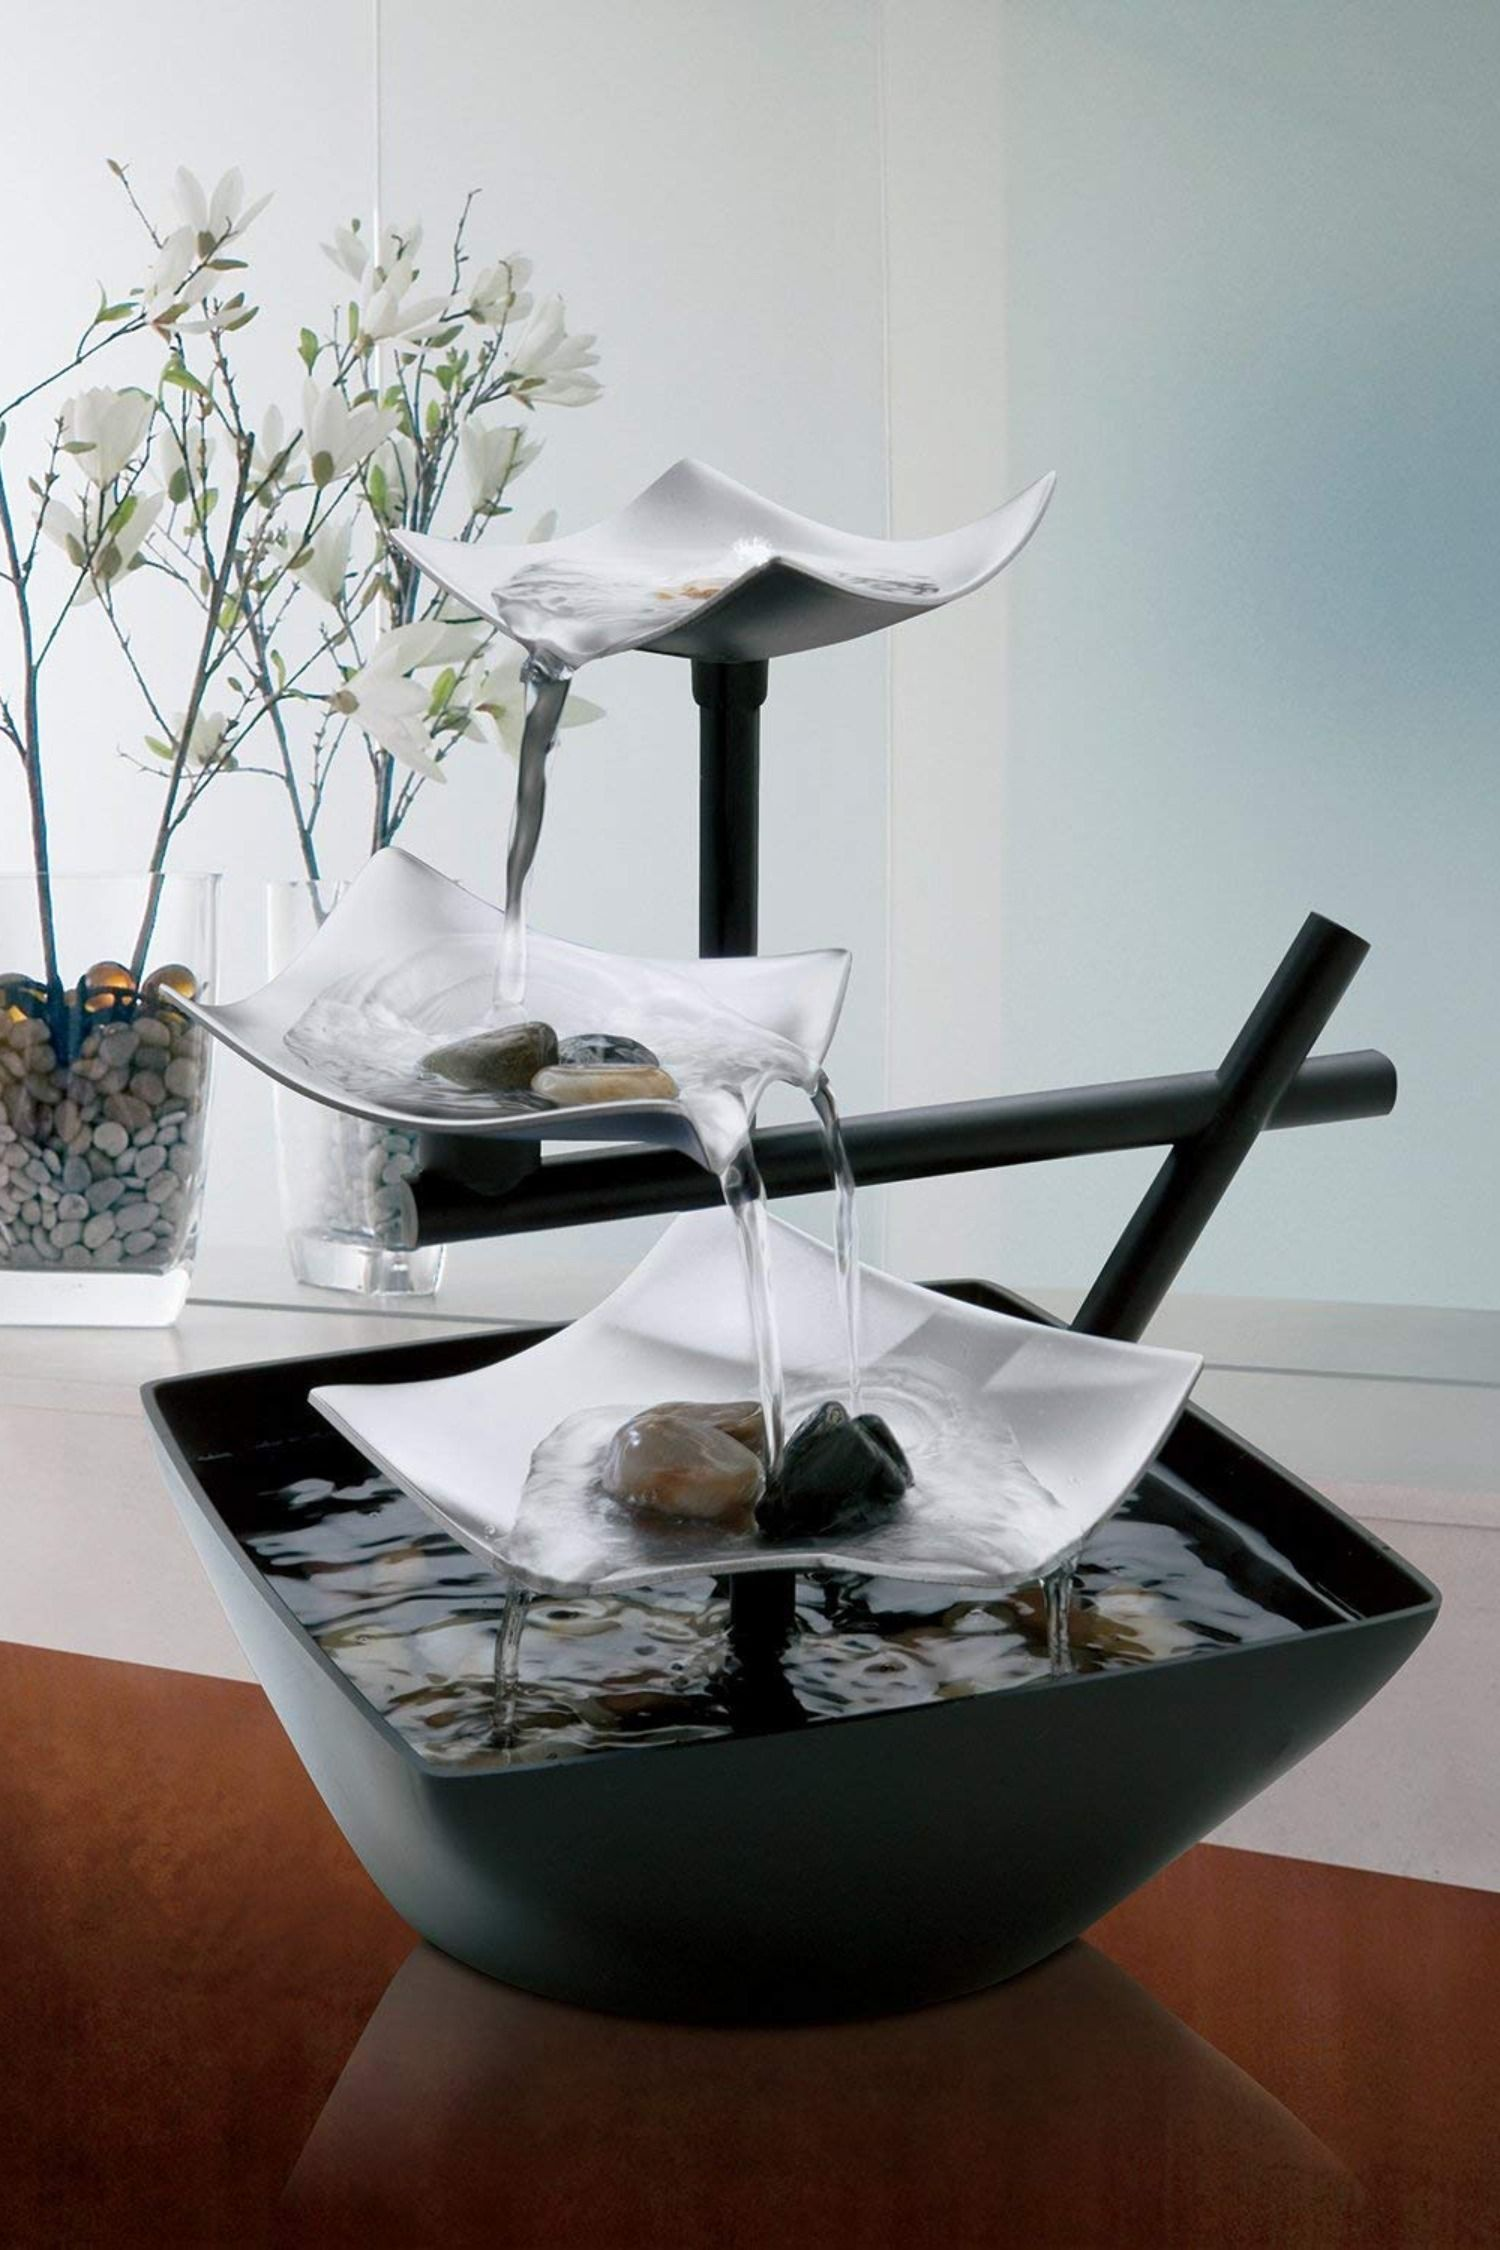 22 Indoor Tabletop Water Fountain Ideas Indoor Tabletop Water